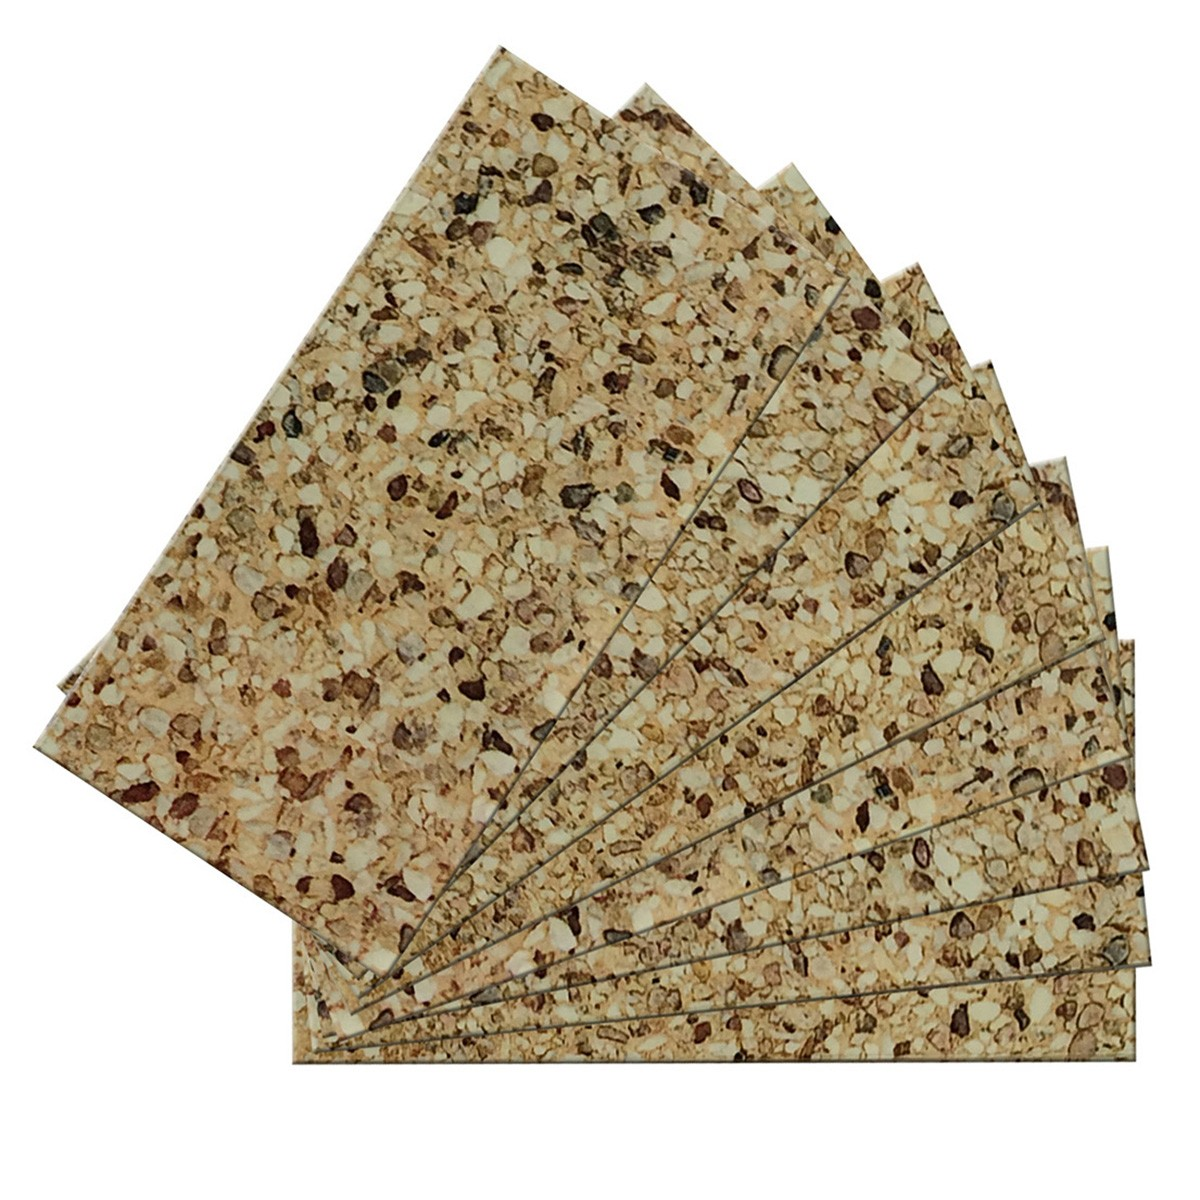 SkinnyTile 04407 Peel and Stick Washed Gravel Shades 6 in. x 3 in. Glass Wall Tile (48-Pack)